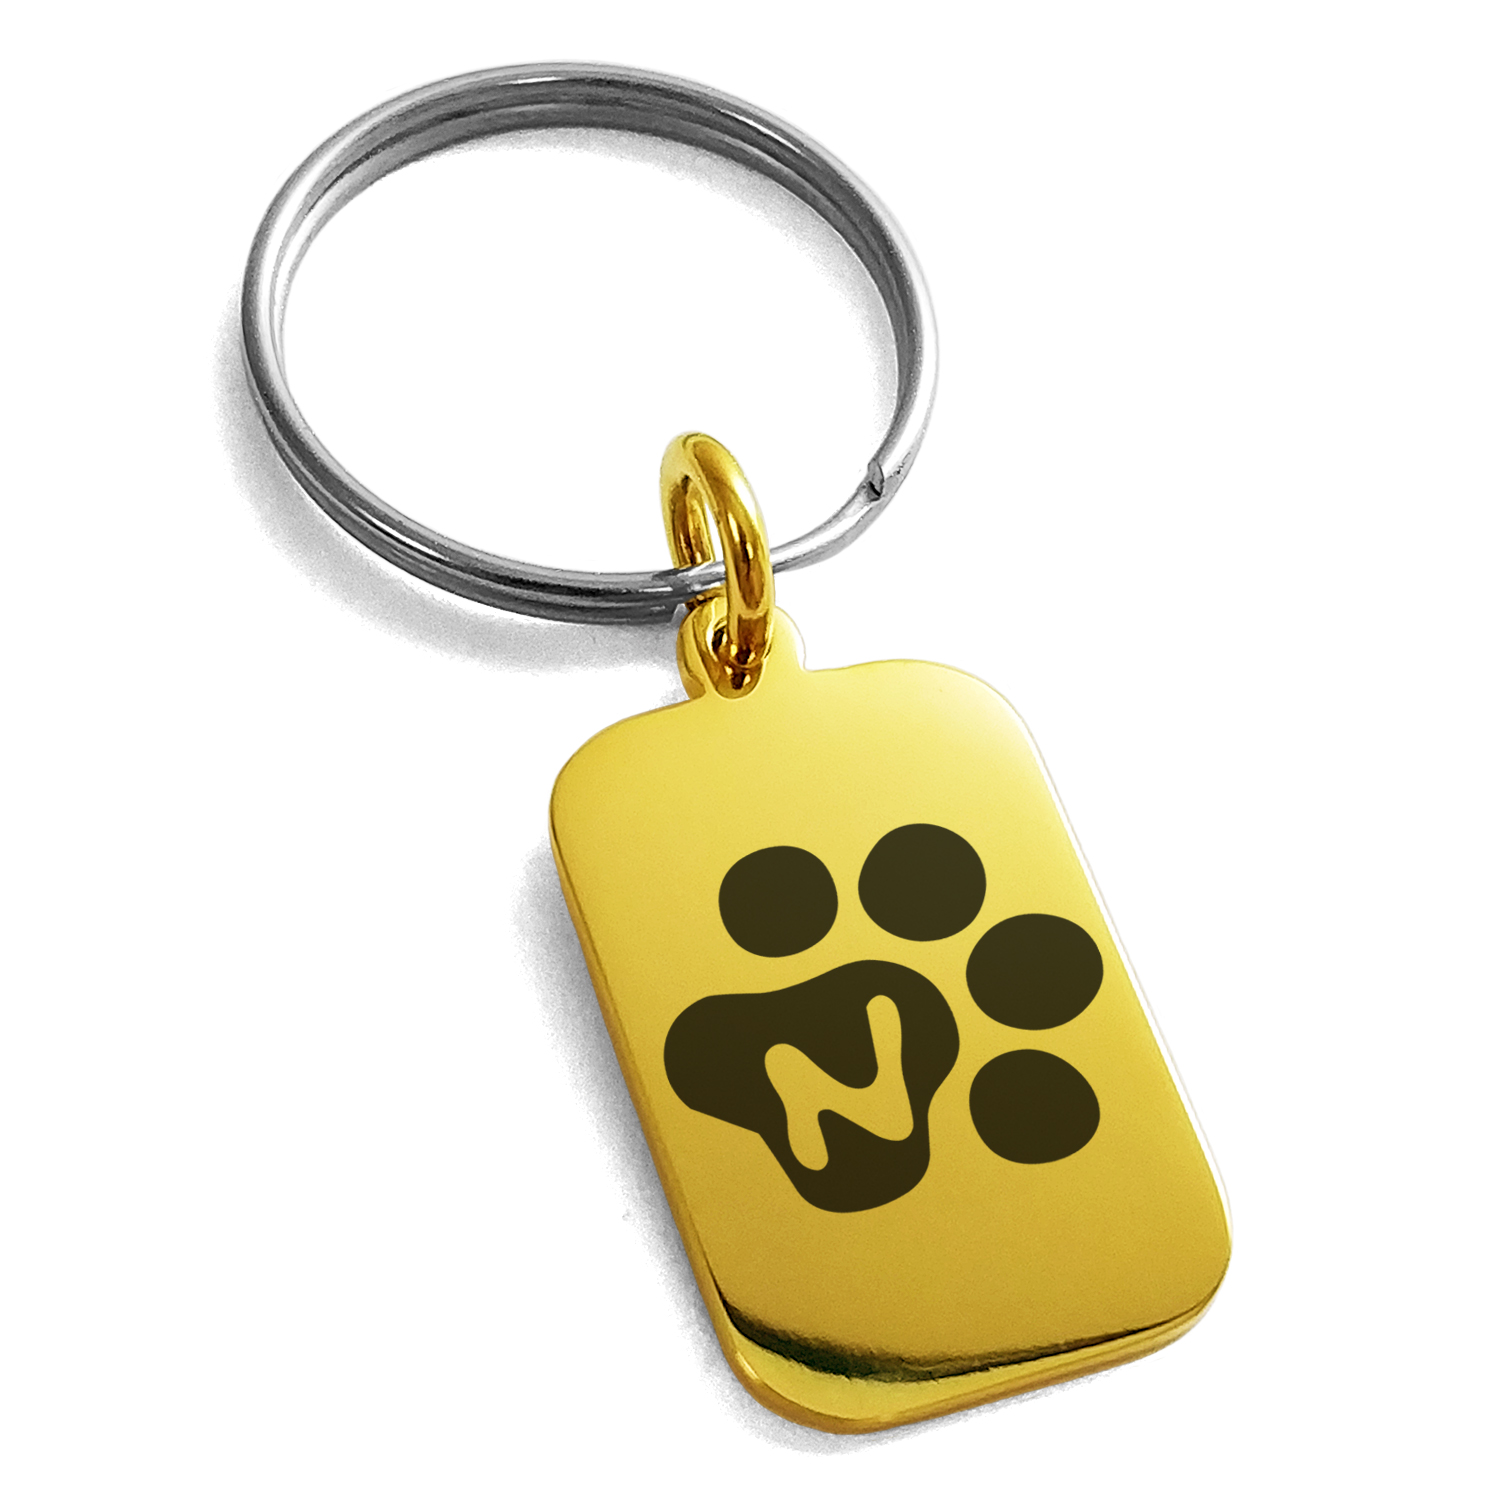 Stainless Steel Letter N Initial Cat Dog Paws Monogram Engraved Small Rectangle Dog Tag Charm Keychain Keyring